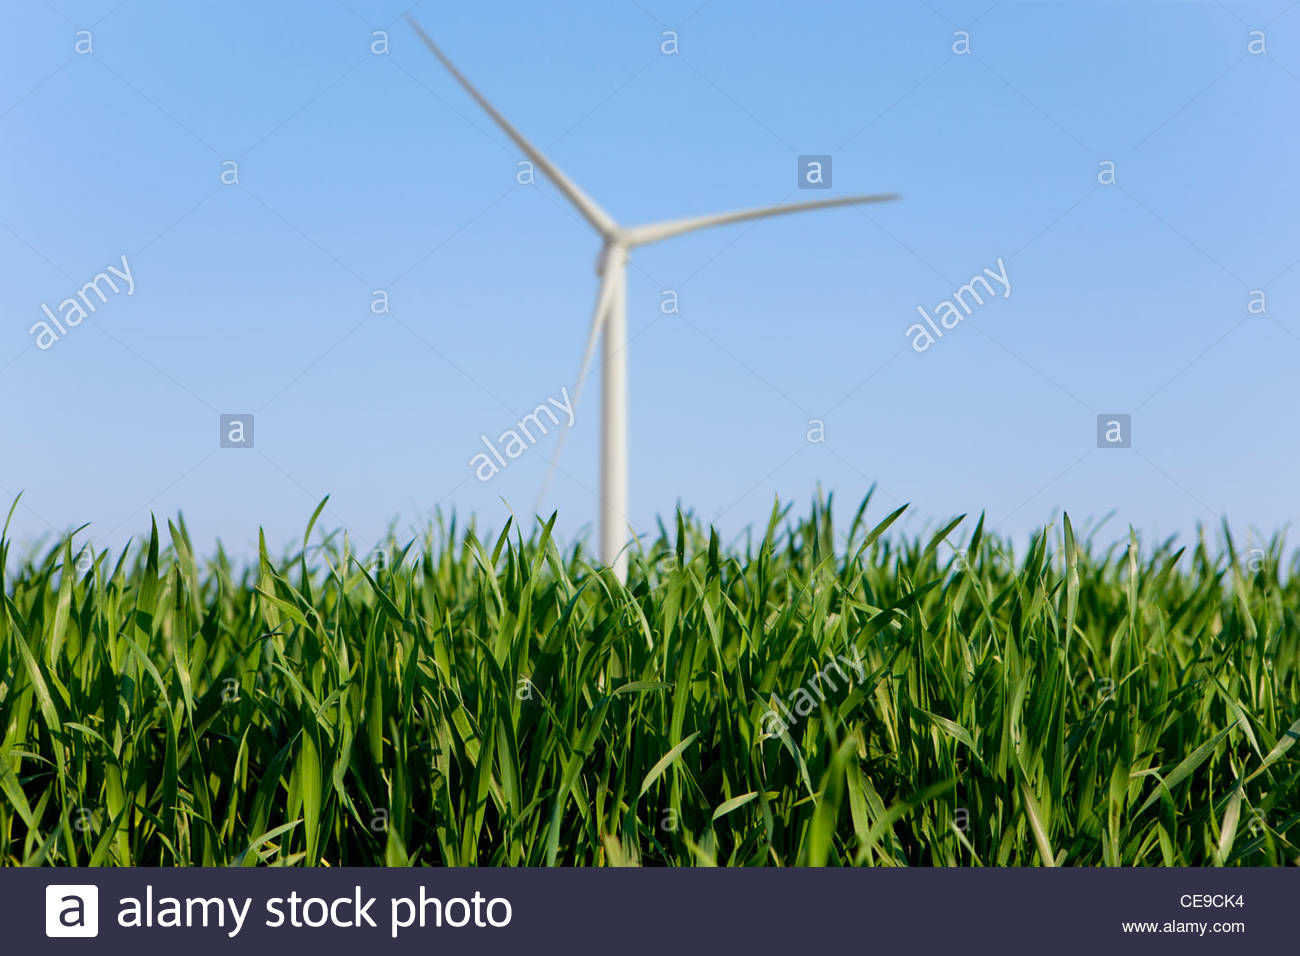 Close up of grass with wind turbine in background - Stock Image